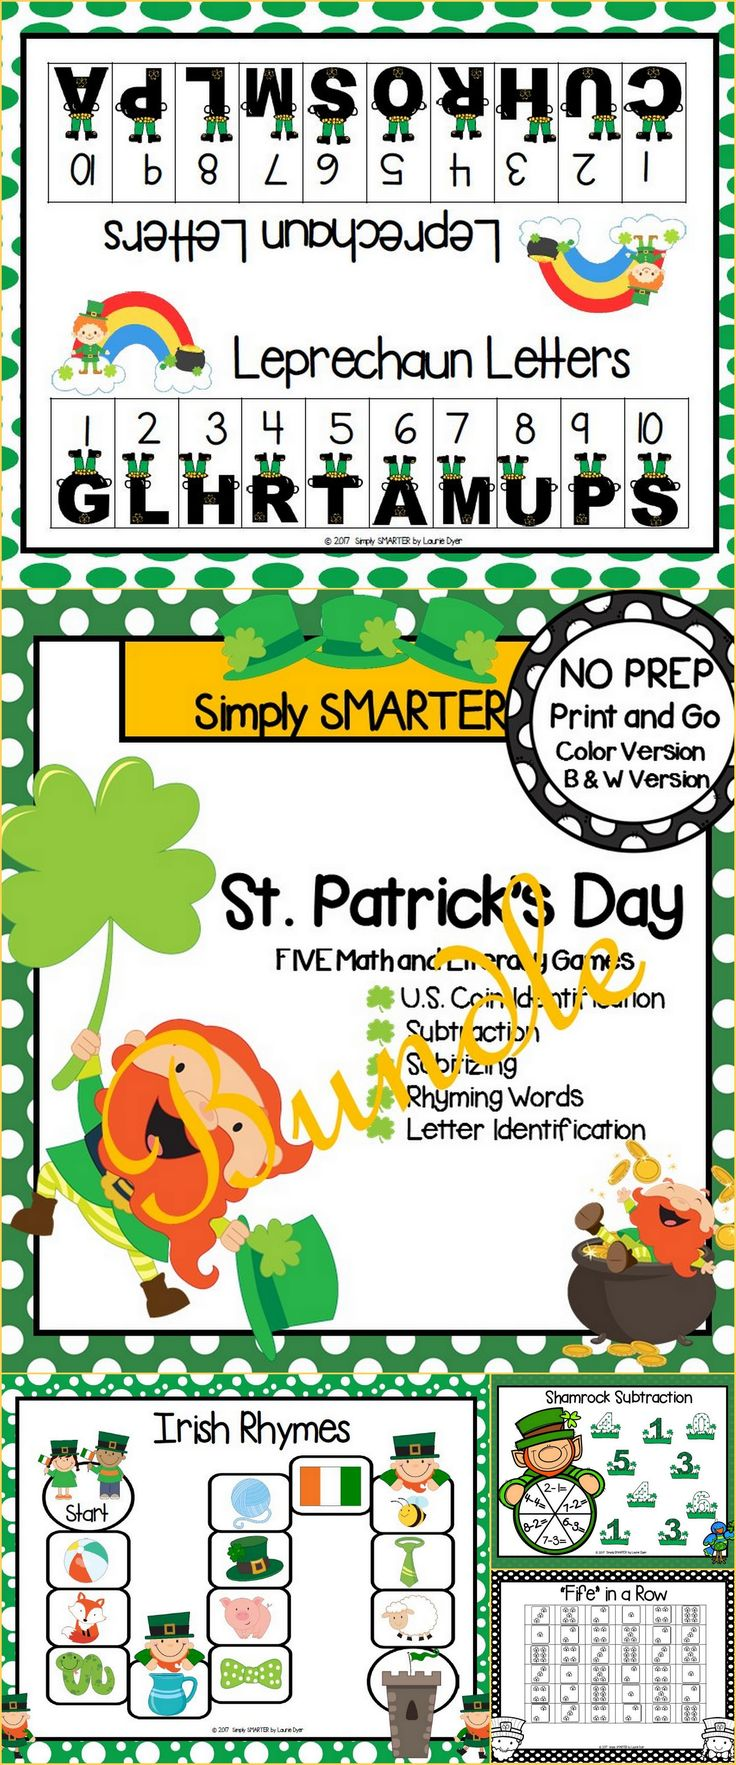 Are you looking for NO PREP literacy and math games for preschool, kindergarten, or first grade? Then download this bundle and go! Enjoy this phonics and math resource which is comprised of FIVE different ST. PATRICK'S DAY themed games complete with a color version and black and white version of each game. The games can be used for small group work, partner collaboration, or homework!